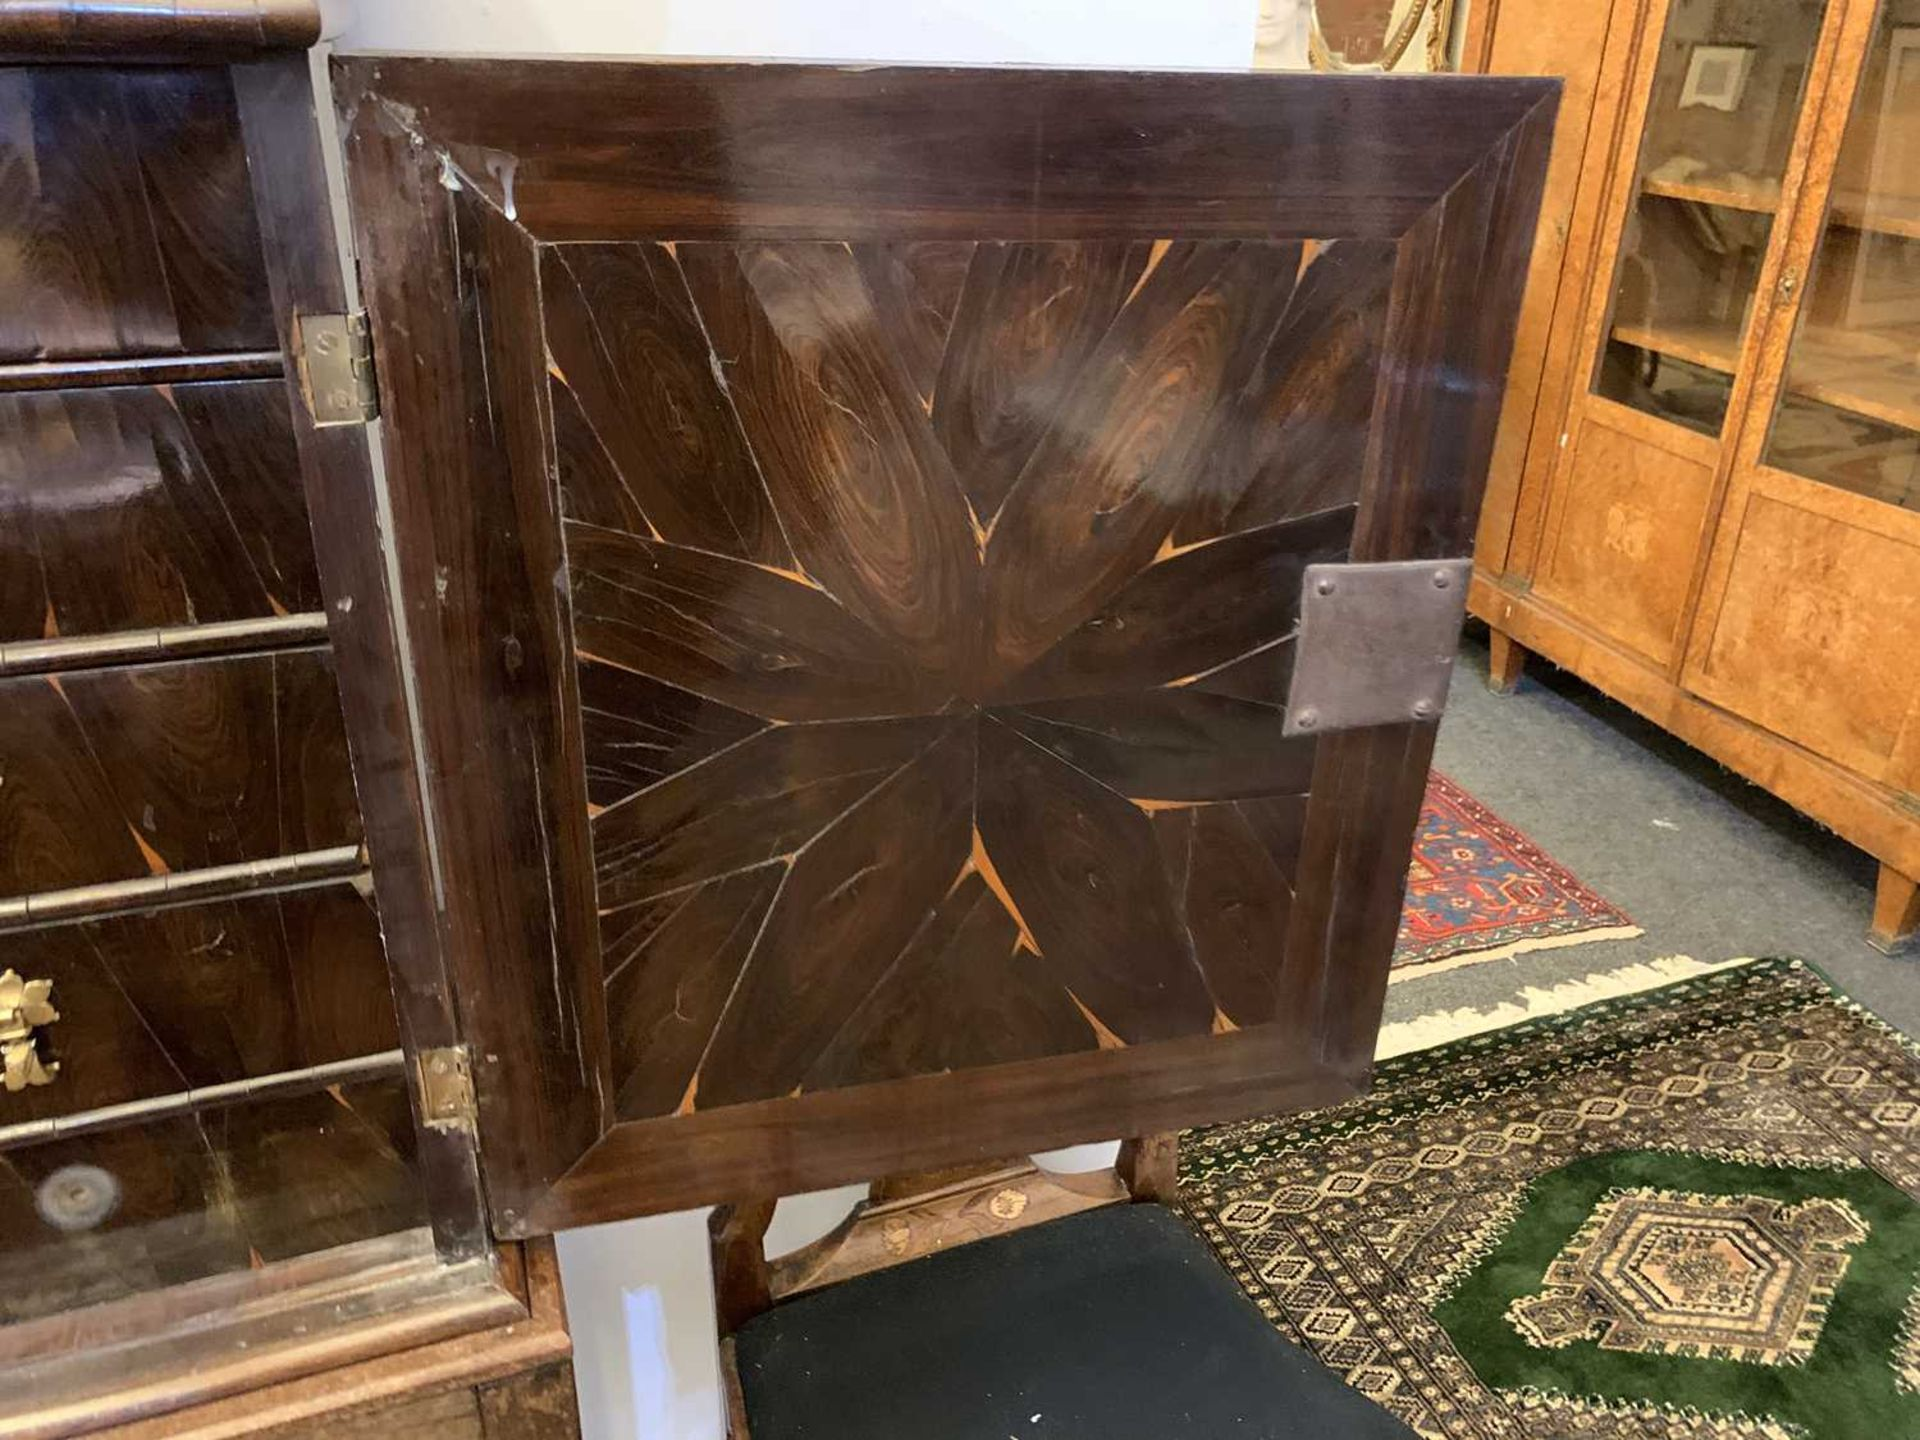 A Queen Anne cocus wood cabinet, - Image 17 of 42